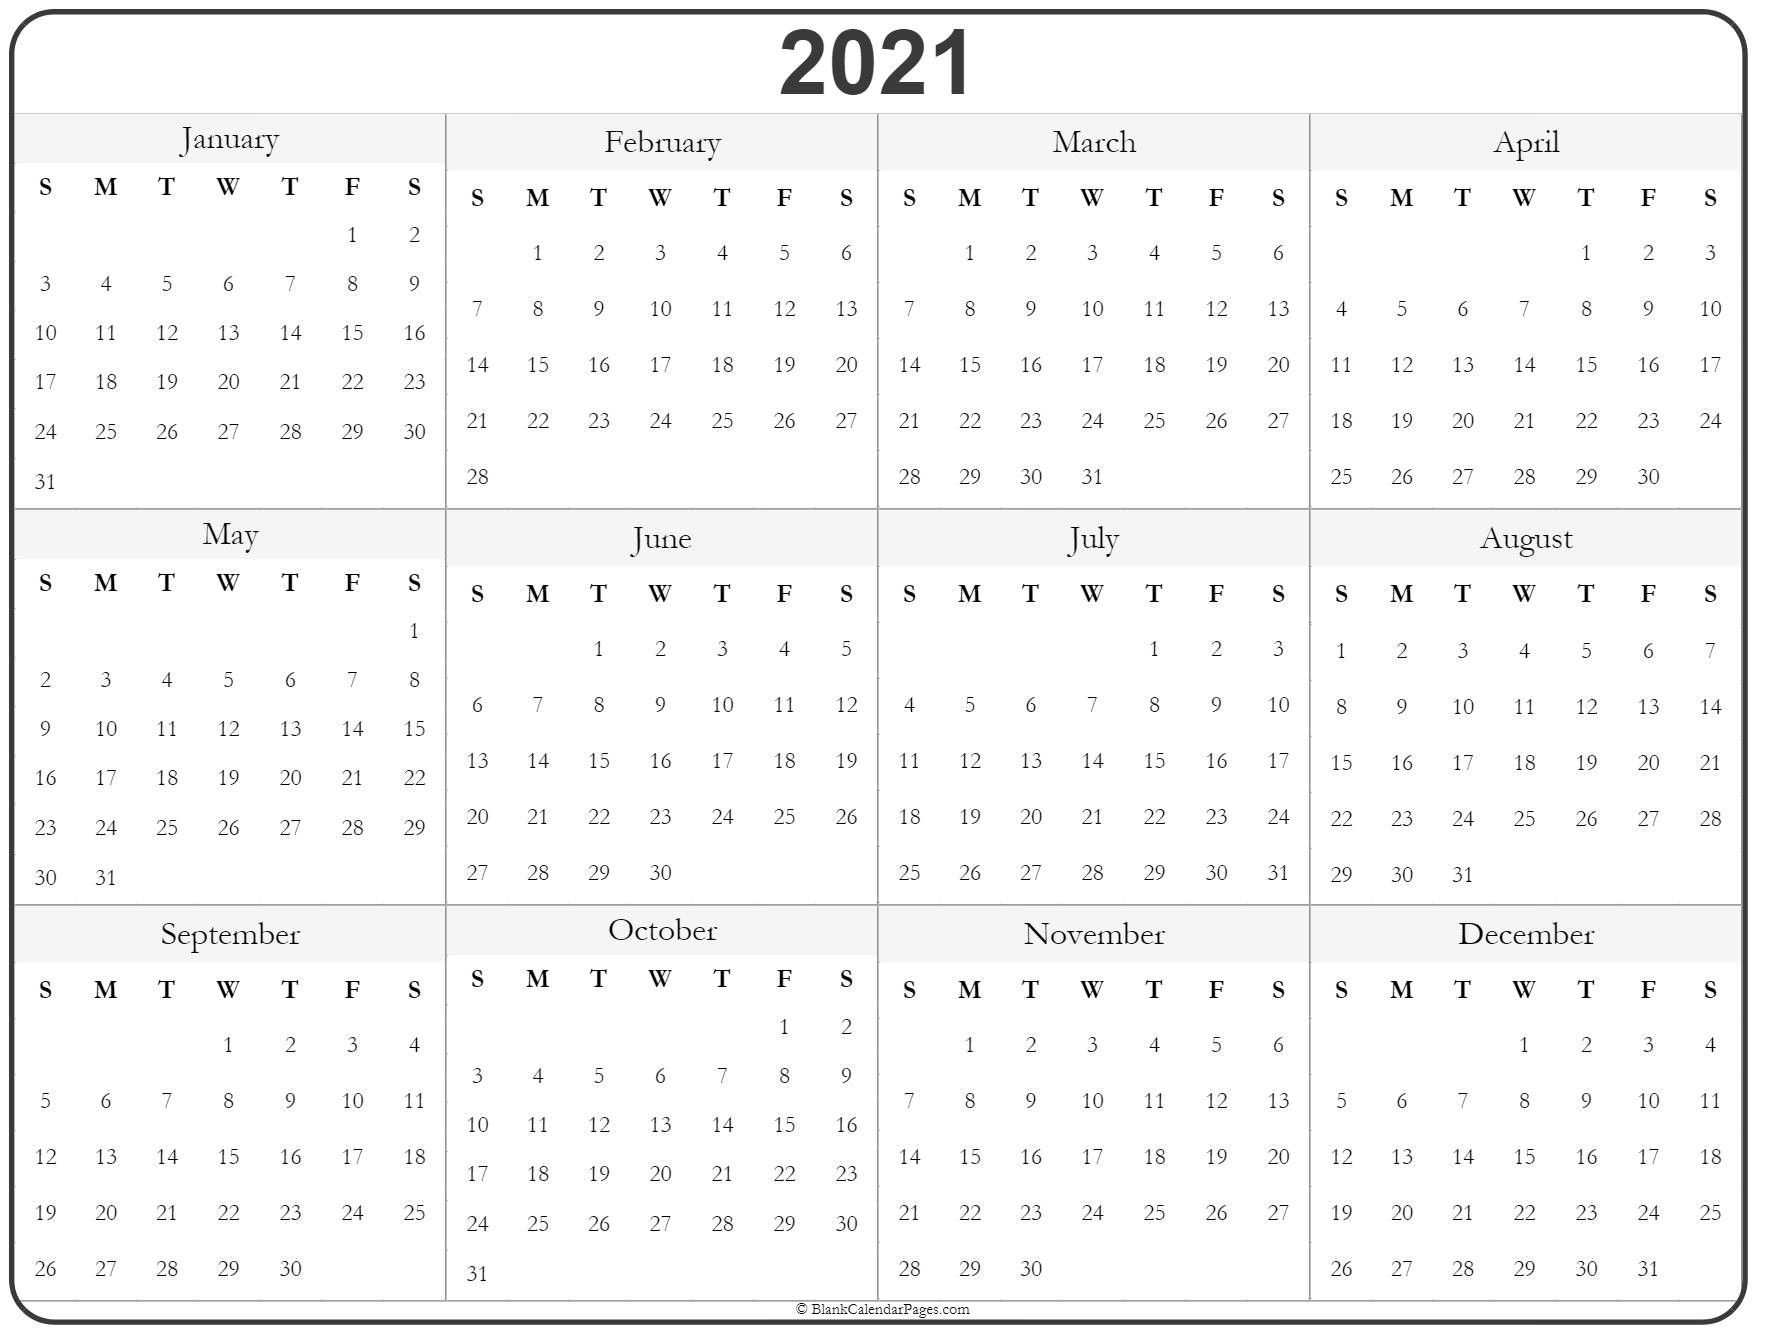 Universal Print Online Calendar 2021 Blank Pleasant For You To Our Blog With This Time Period I Calendar Printables Printable Yearly Calendar Print Calendar